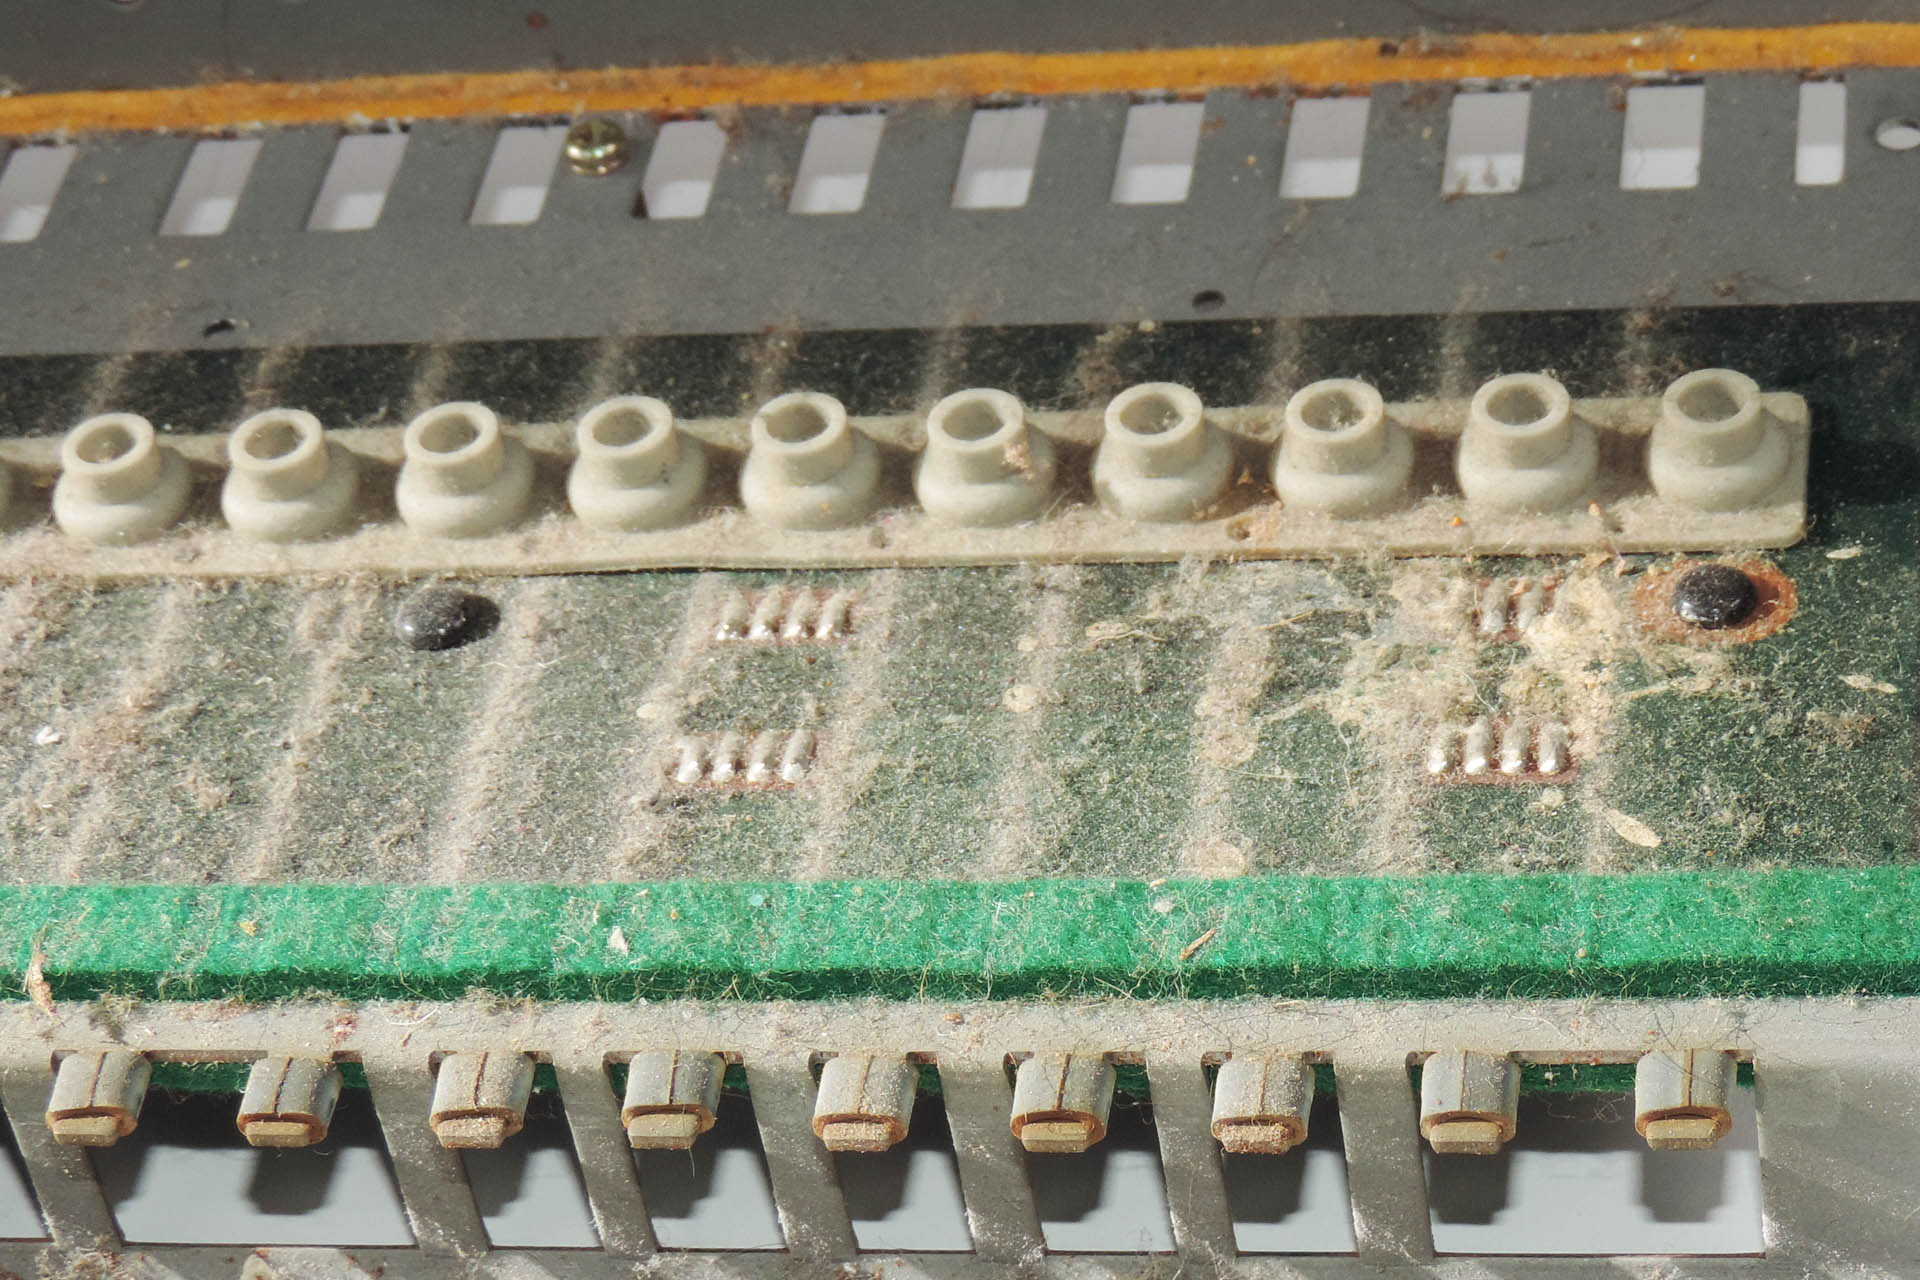 Roland SH-101 keyboard bed after decades of neglect